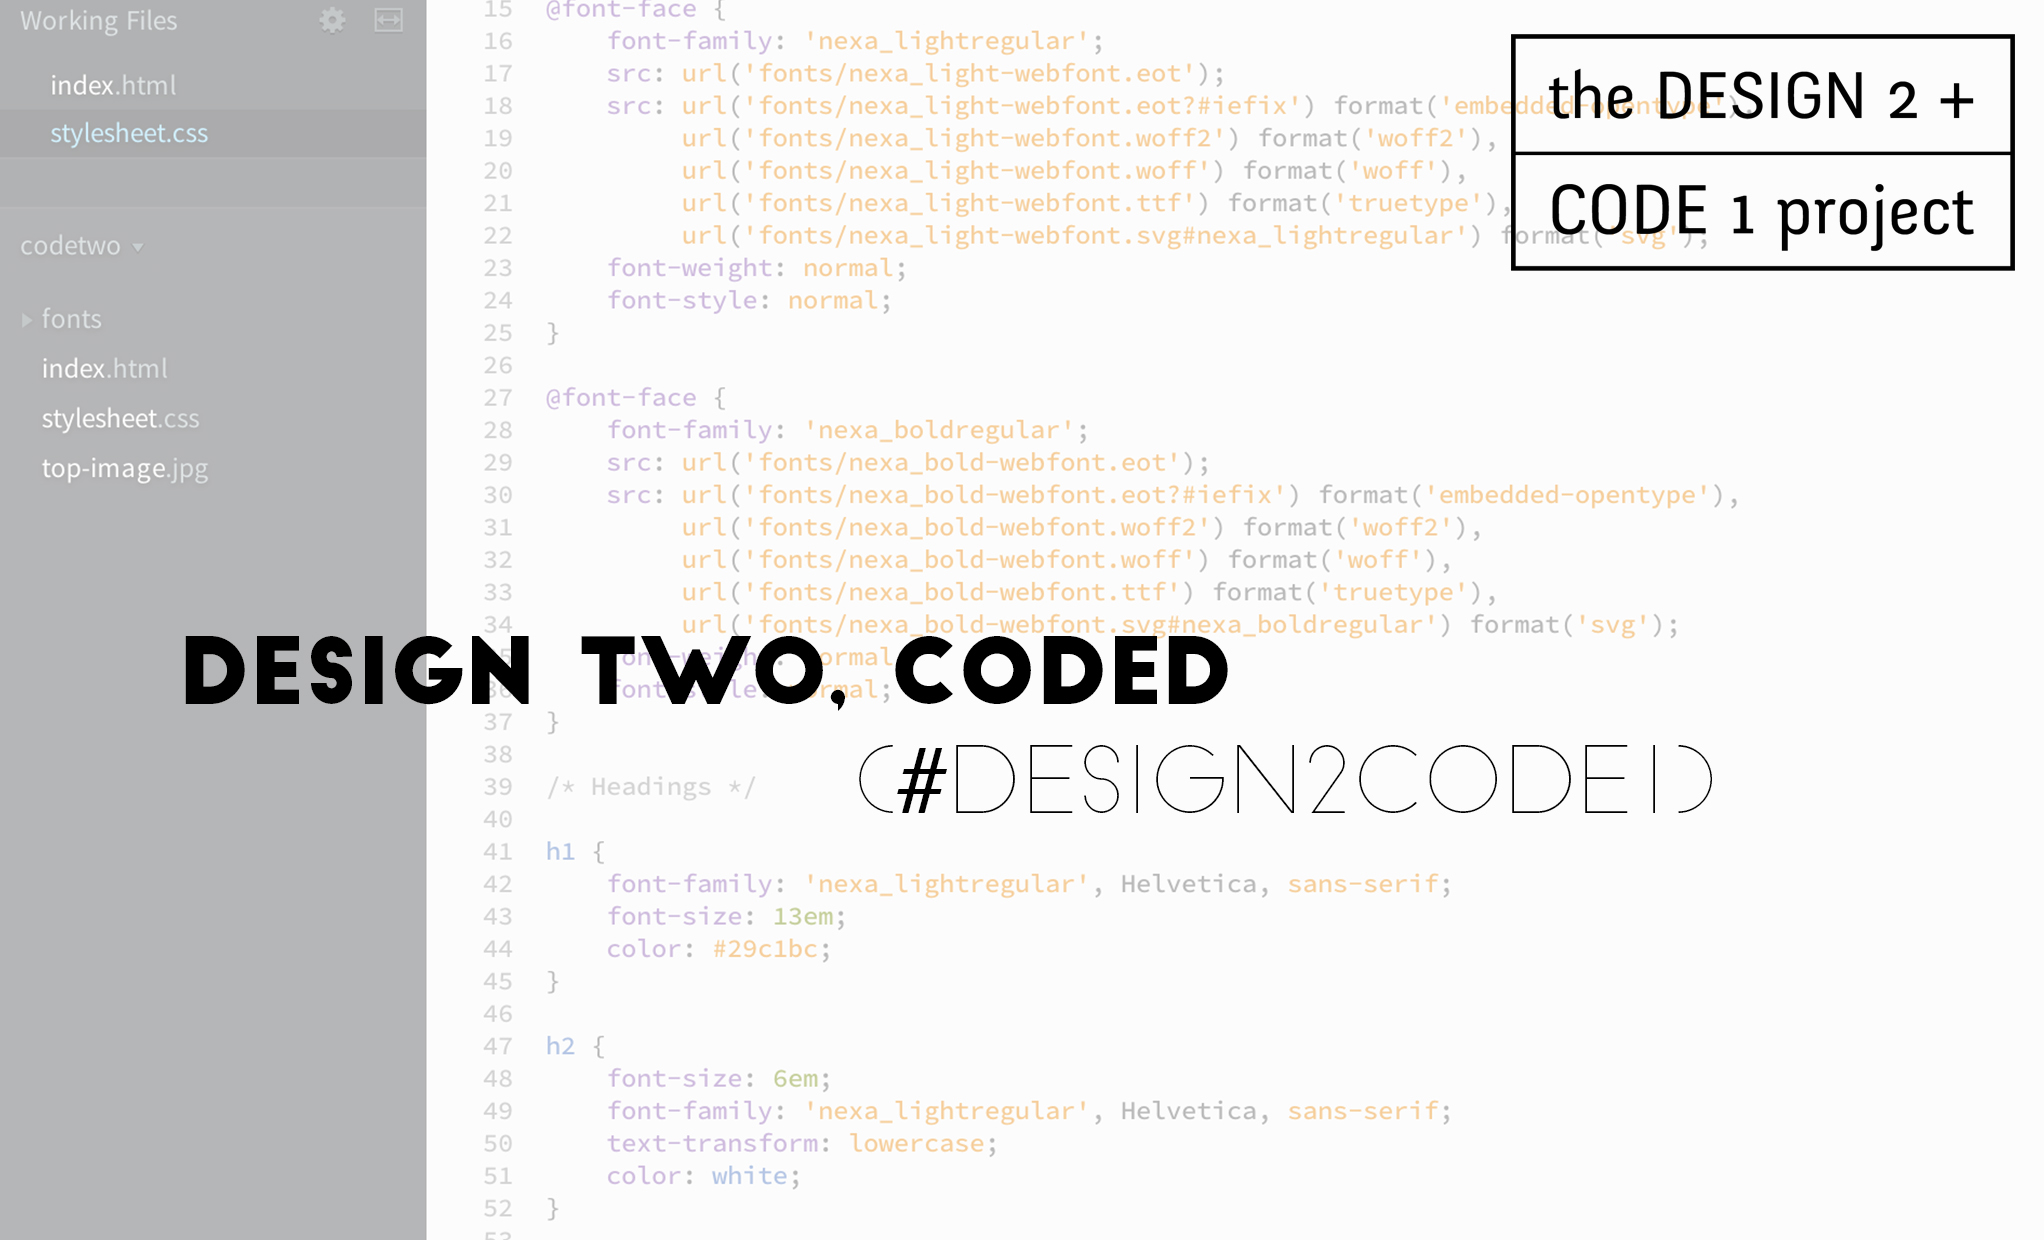 design two, coded